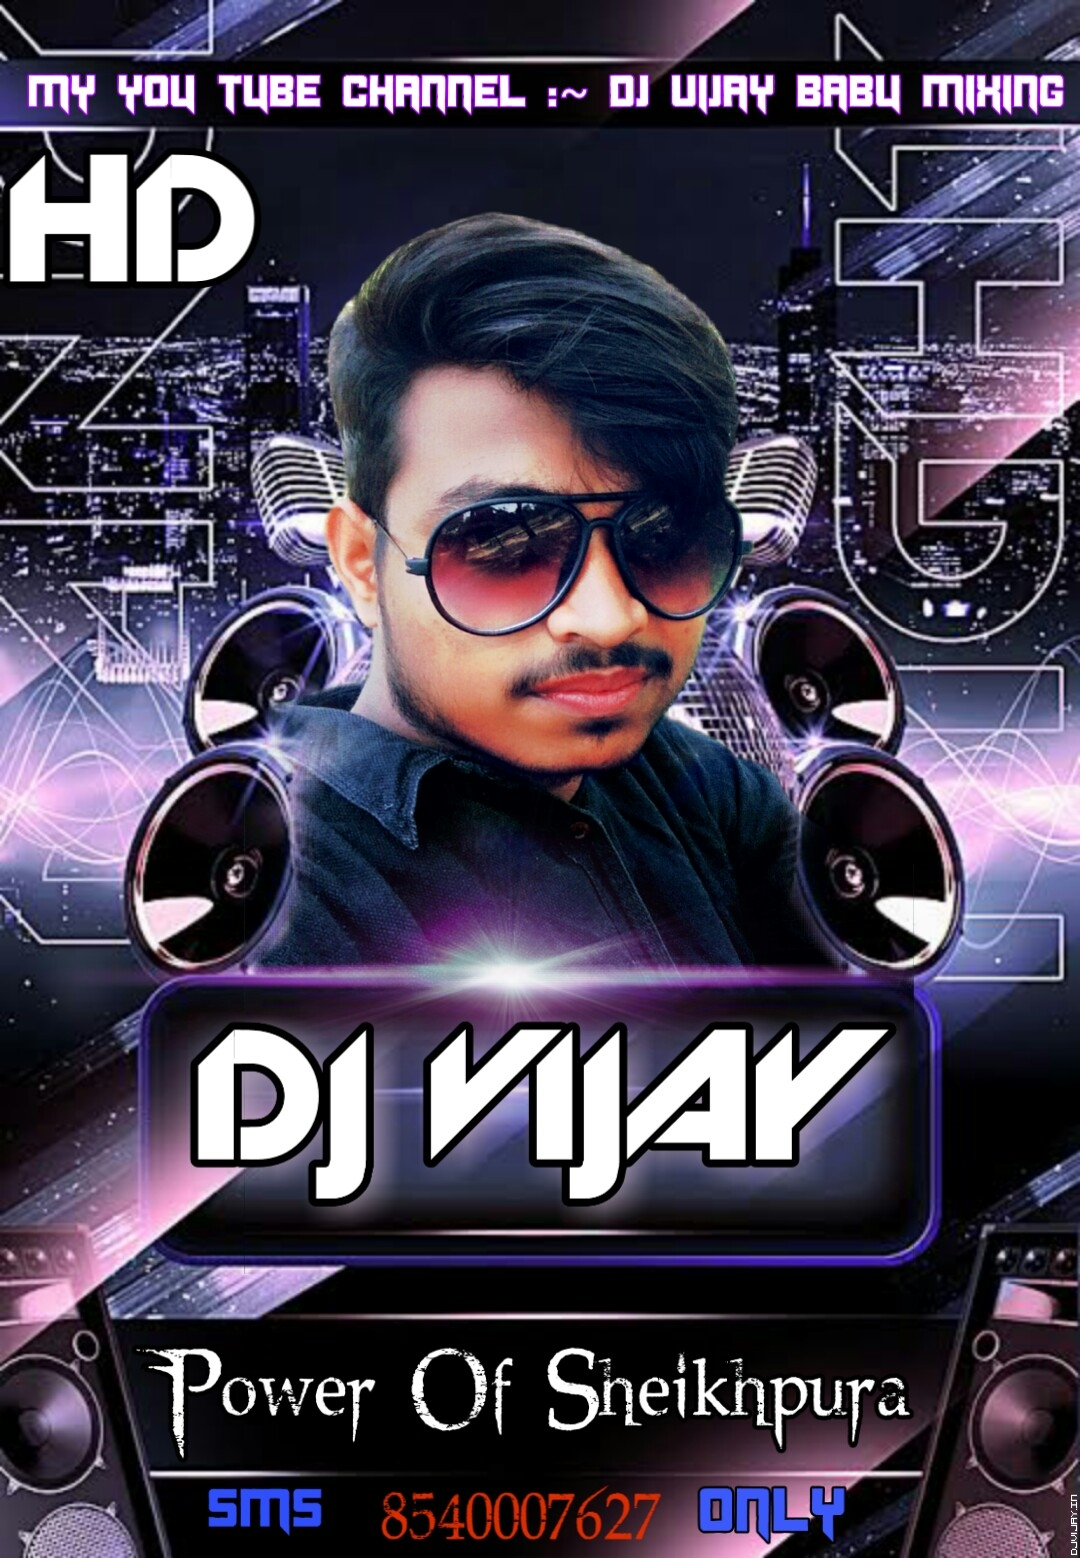 Dil Bole Bum Bum Bum Pawan Singh Bol Bum Song Mix Dj Vijay.mp3